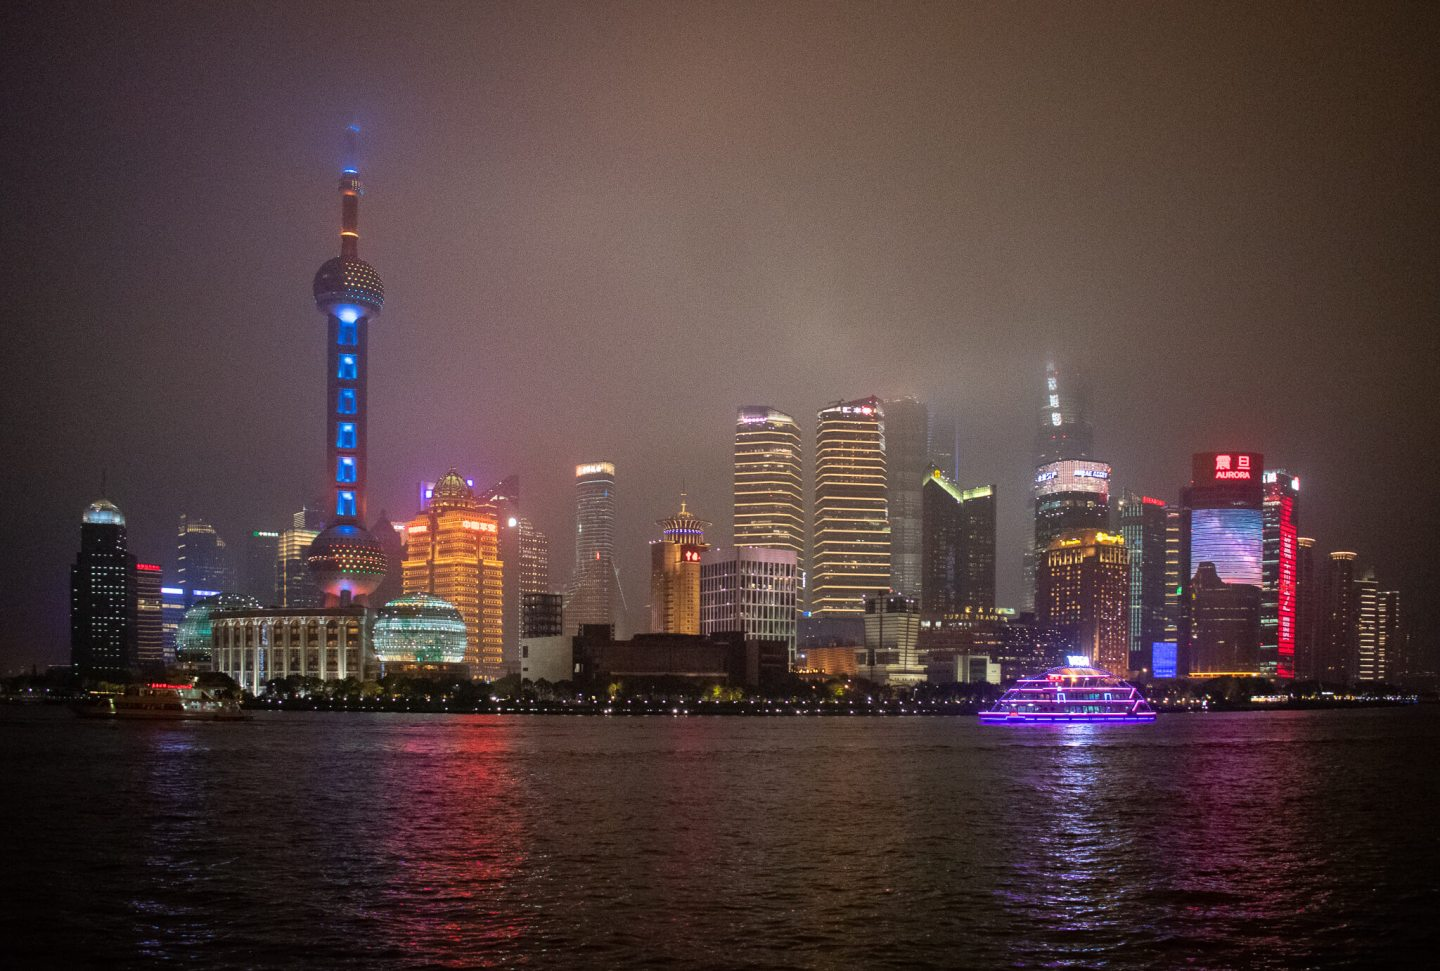 View of Shanghai's skyline with Oriental Pearl Tower and other skyscrapers across the river